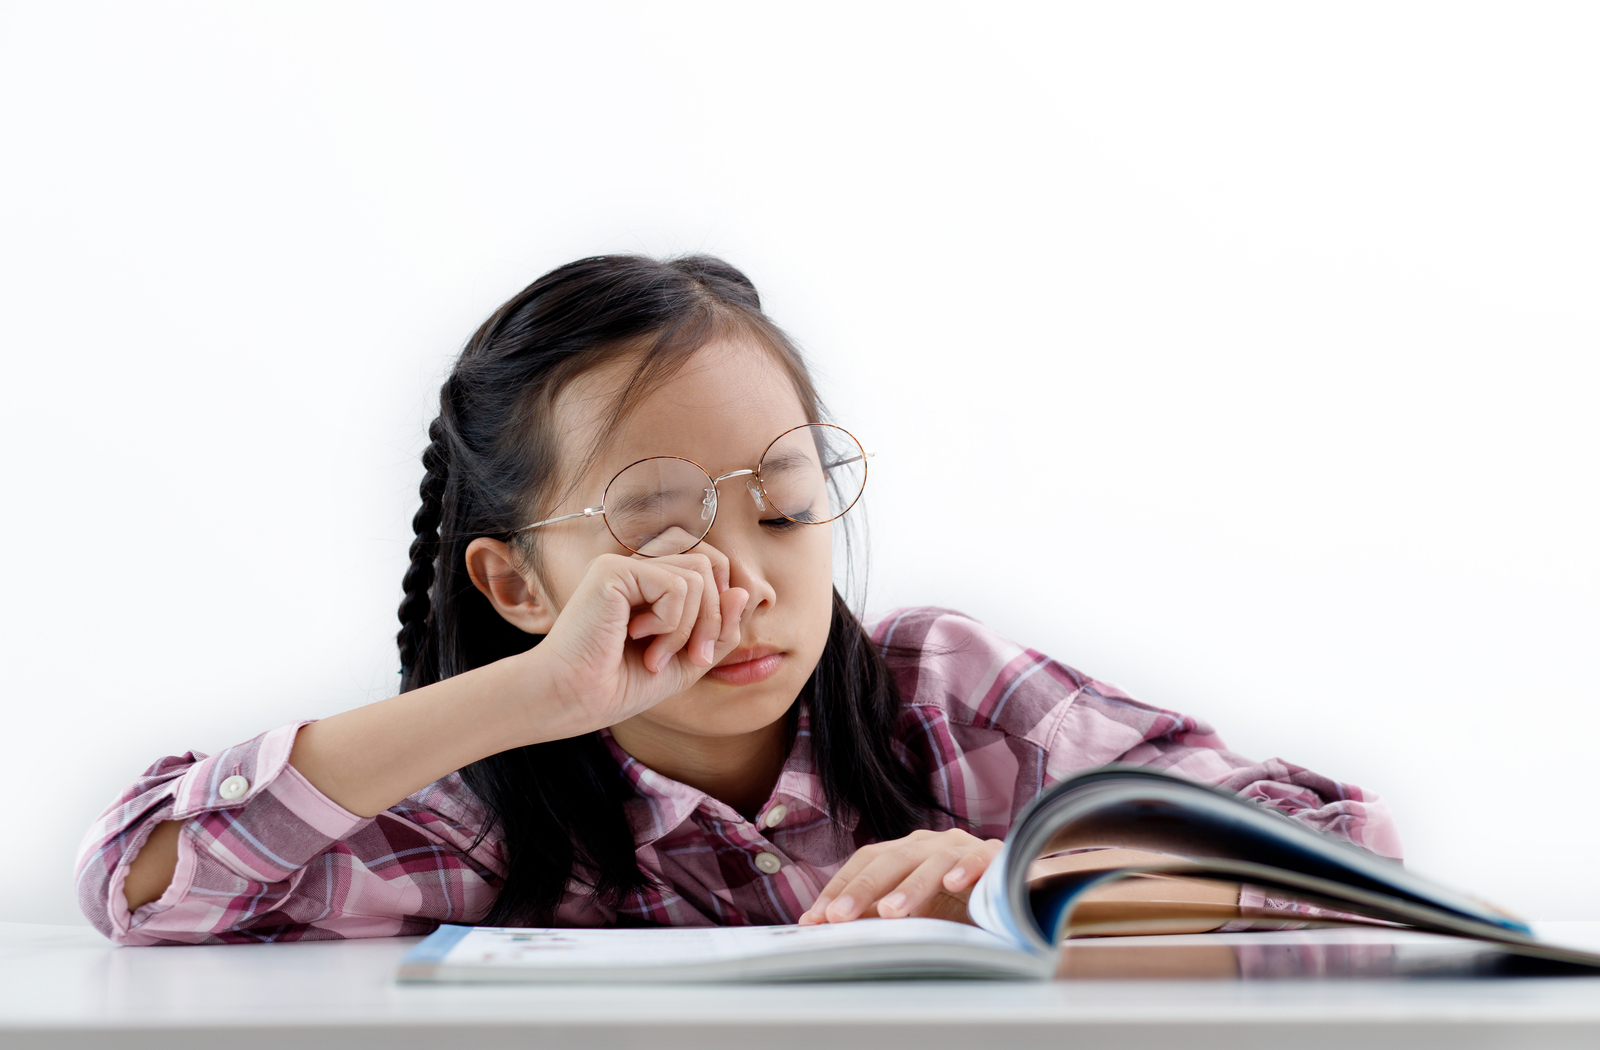 young girl reading and rubbing her dry eyes